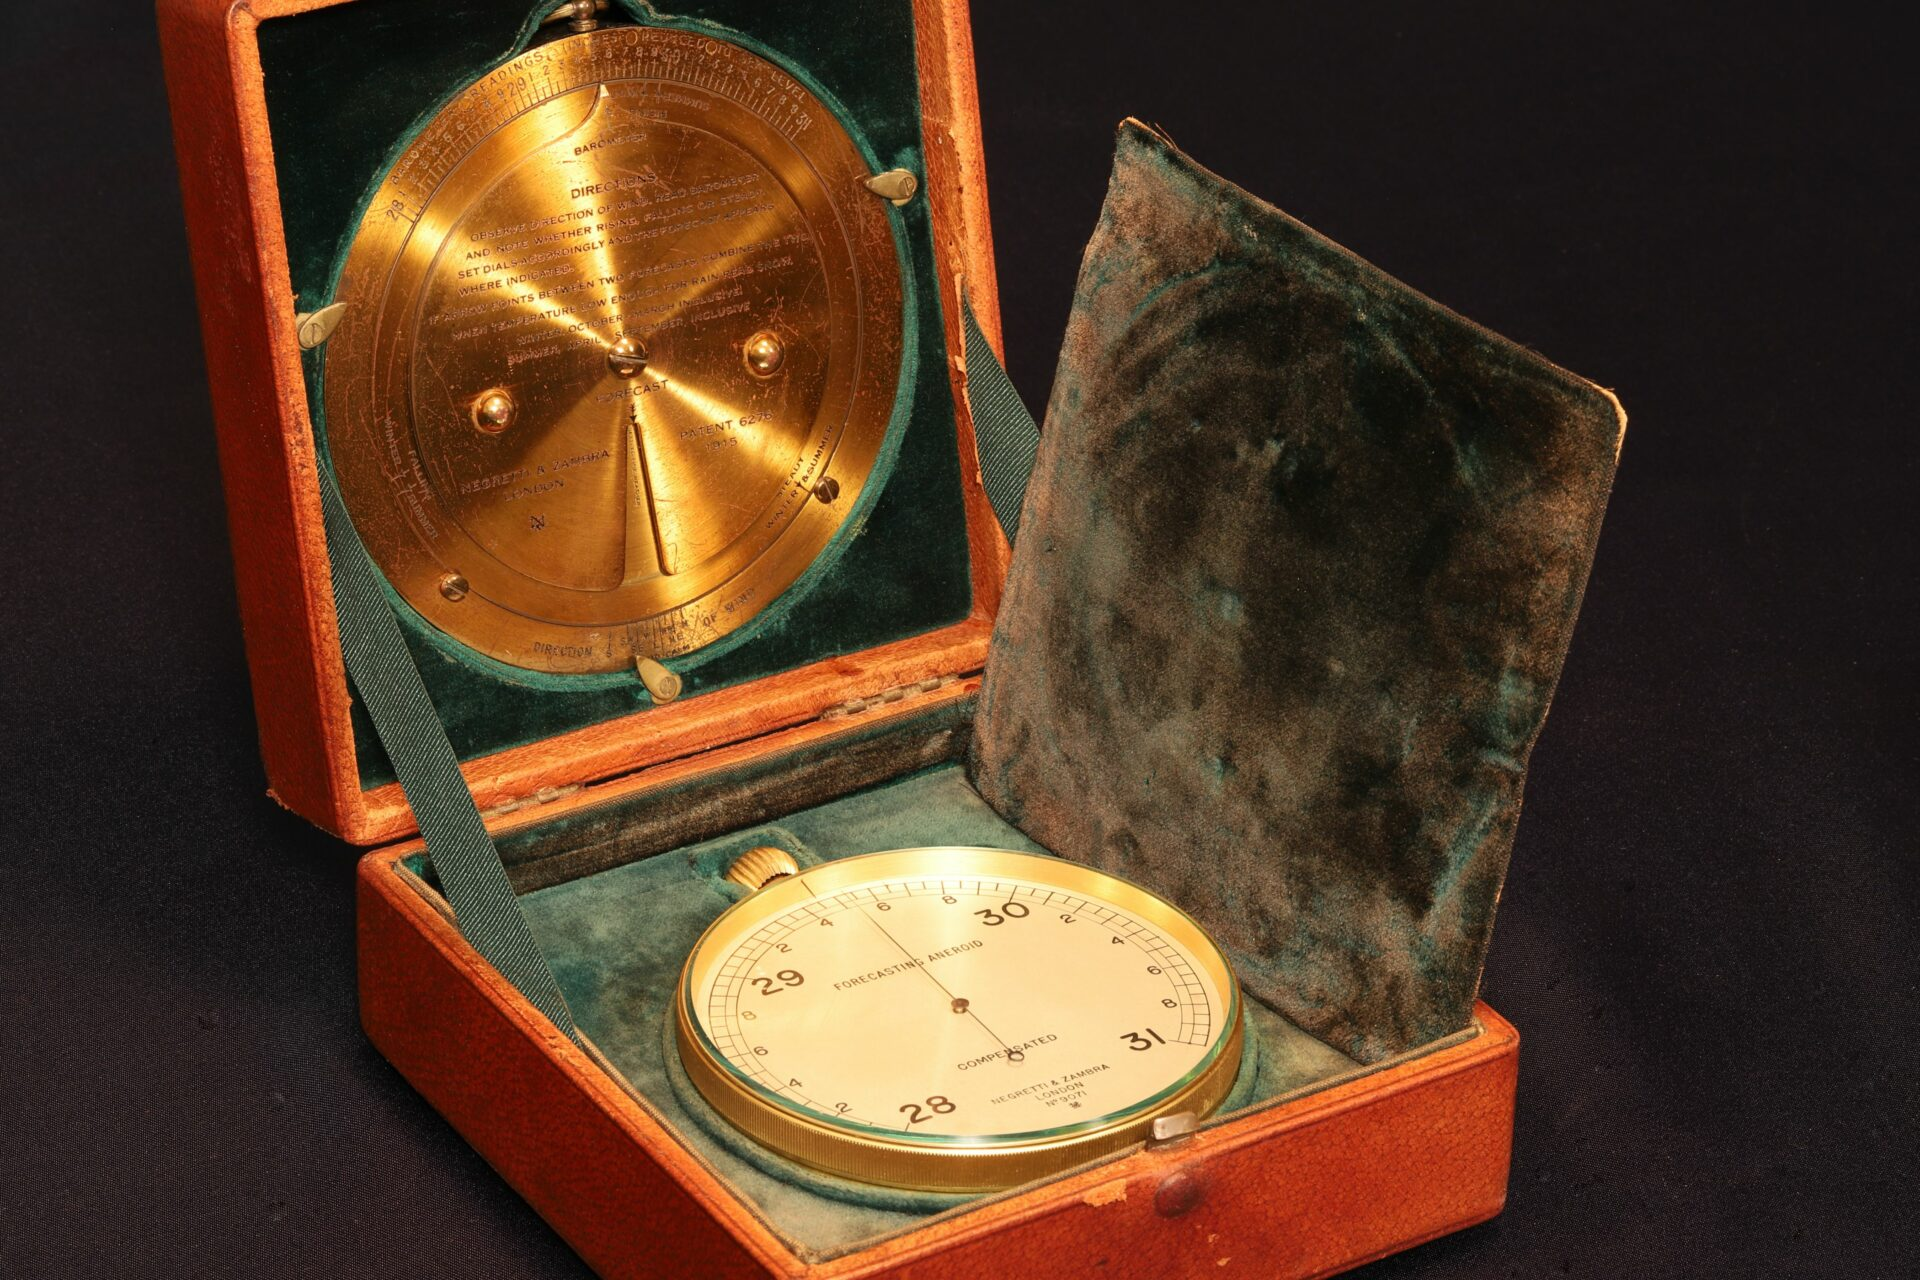 Image of Negretti & Zambra Forecasting Aneroid No 9071 c1920 in case with brass forecaster and velvet covered pad